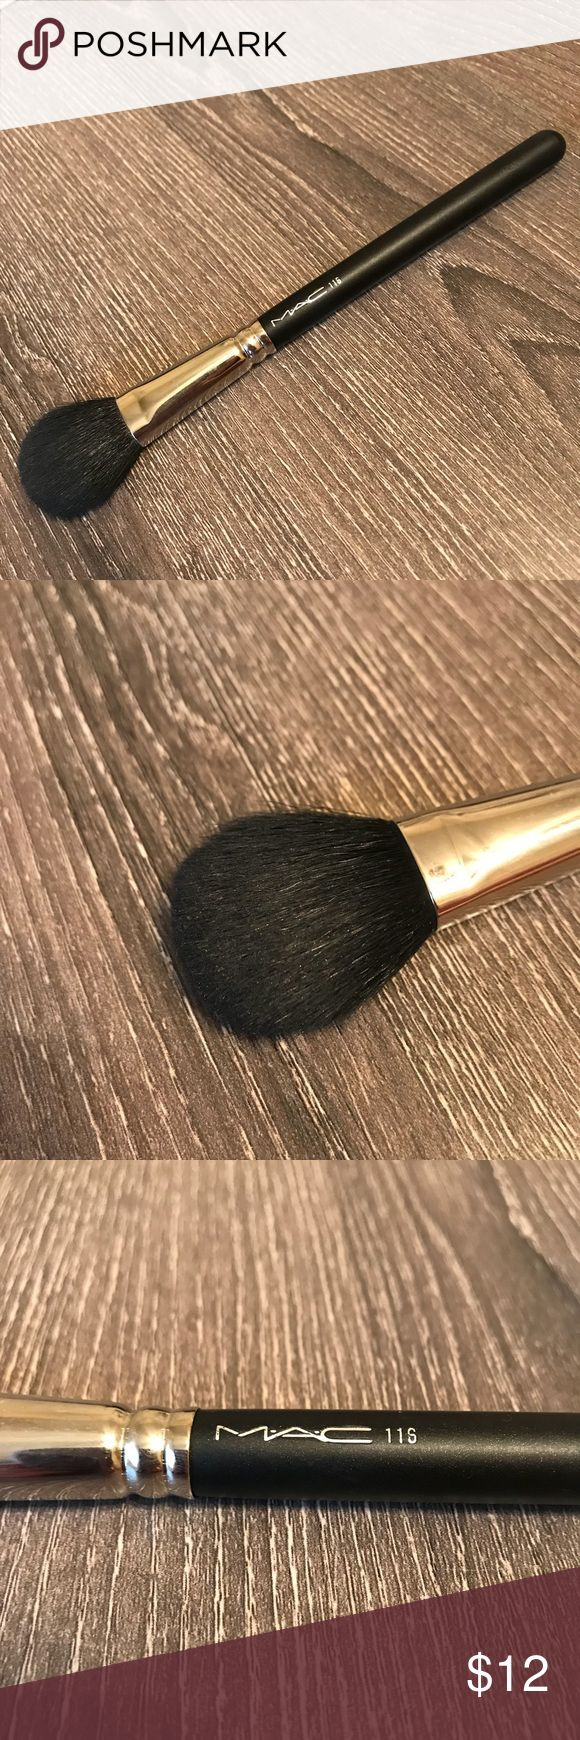 MAC Blush Brush Gently used mac blush brush #116. Only used a few times and is washed with clinique brush cleaner. See pictures for quality. Will ship same day! Makeup Brushes & Tools